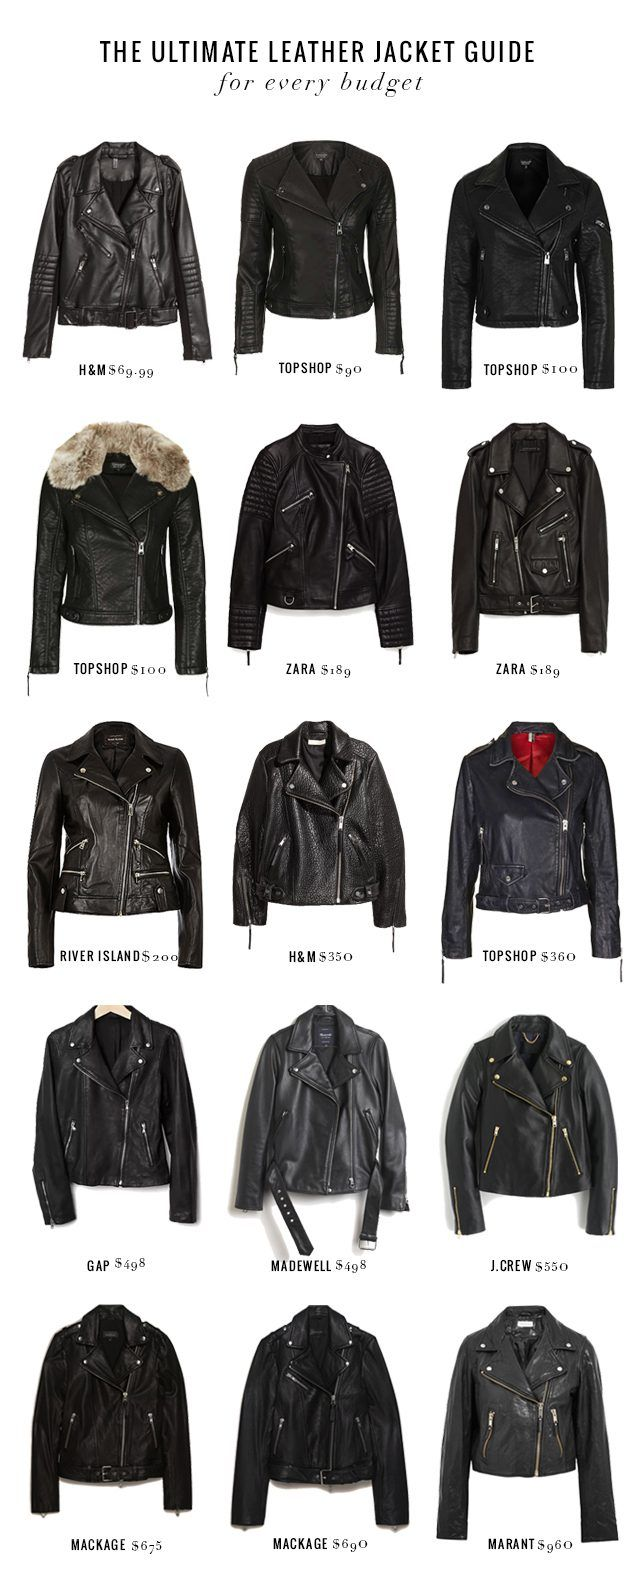 15 Leather Jackets at Every Price Point | eHow